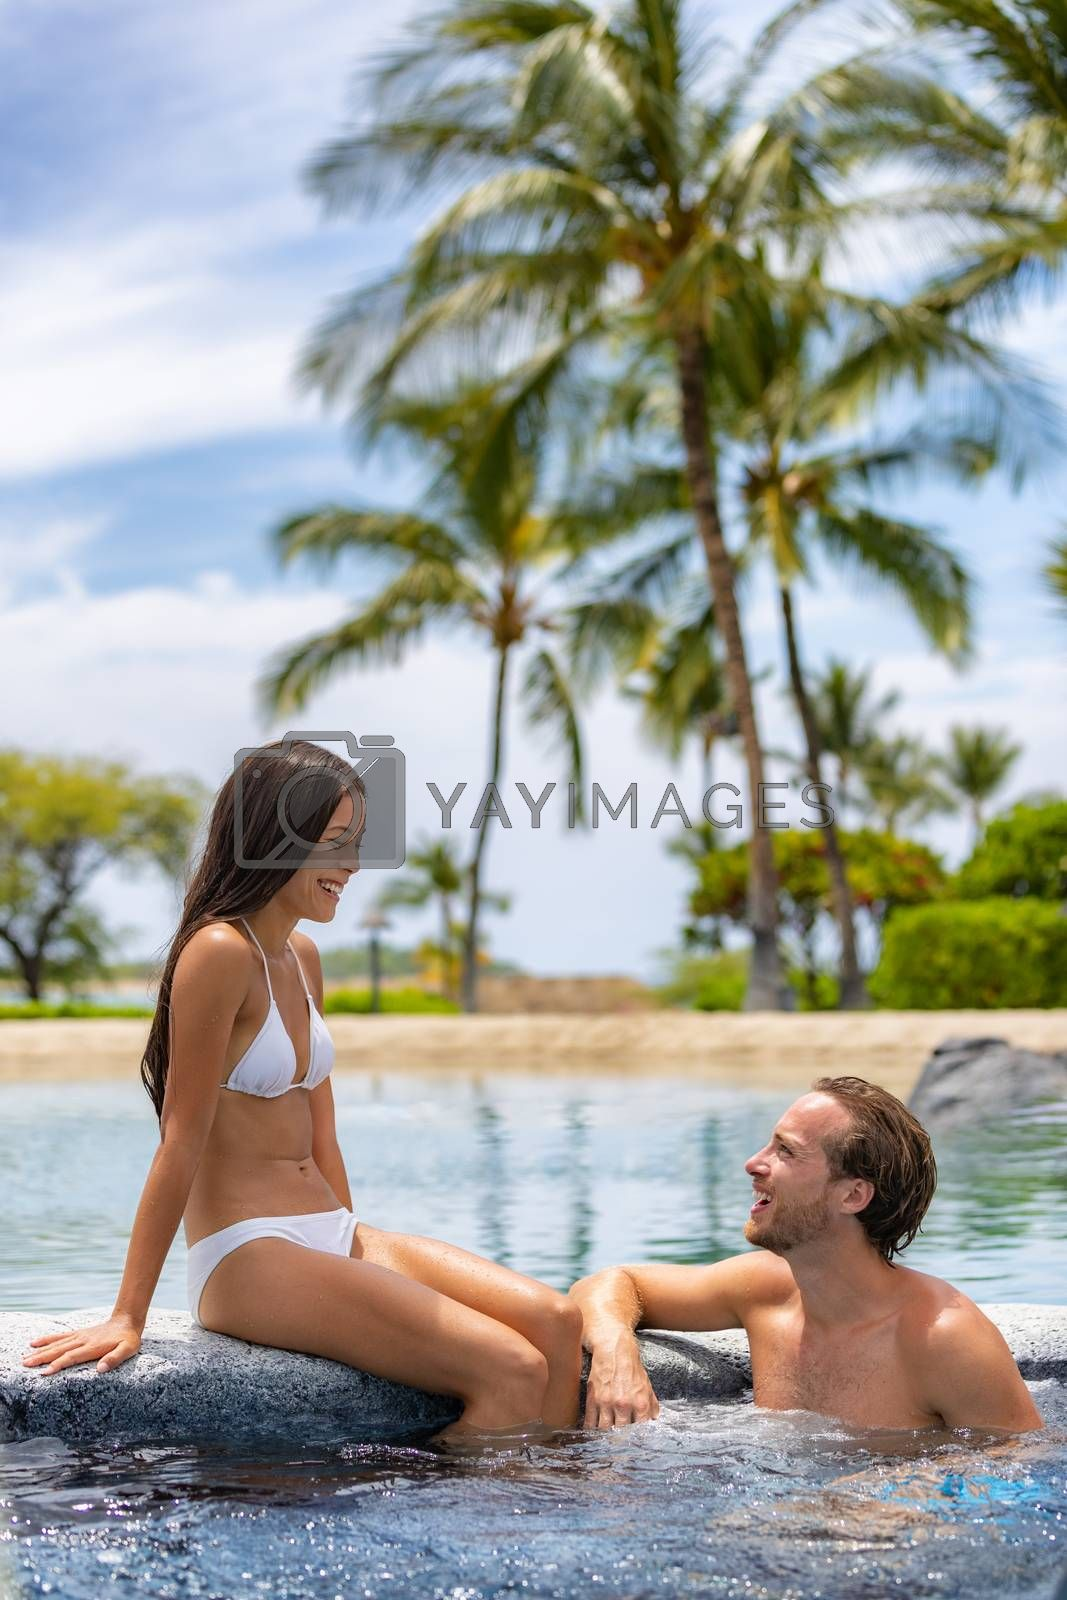 Spa resort couple relaxing enjoying jacuzzi hot tub swimming pool outdoors on summer vacation travel holidays honeymoon getaway. Young interracial couple laughing happy, Asian woman, Caucasian man.